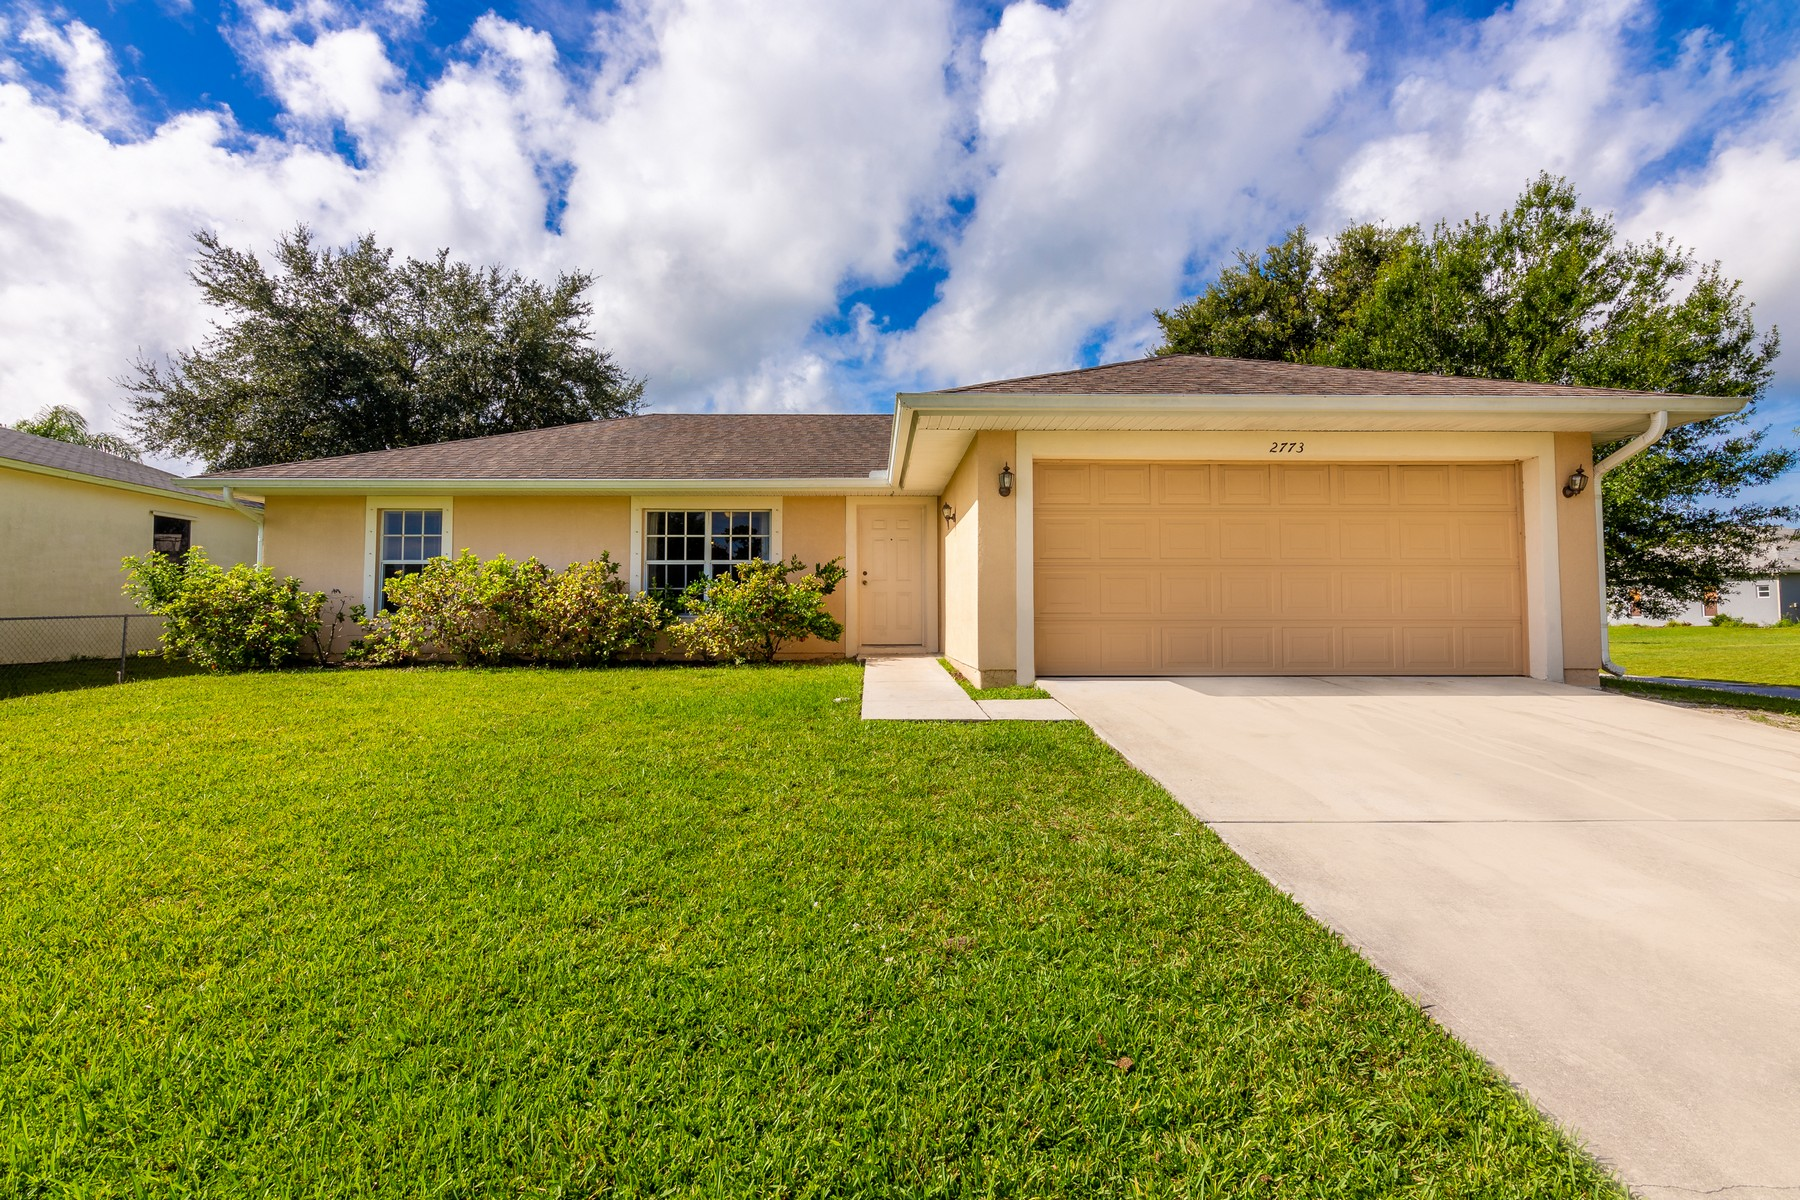 Single Family Homes for Sale at Live the Florida Dream! 2773 San Filippo Dr SE Palm Bay, Florida 32909 United States